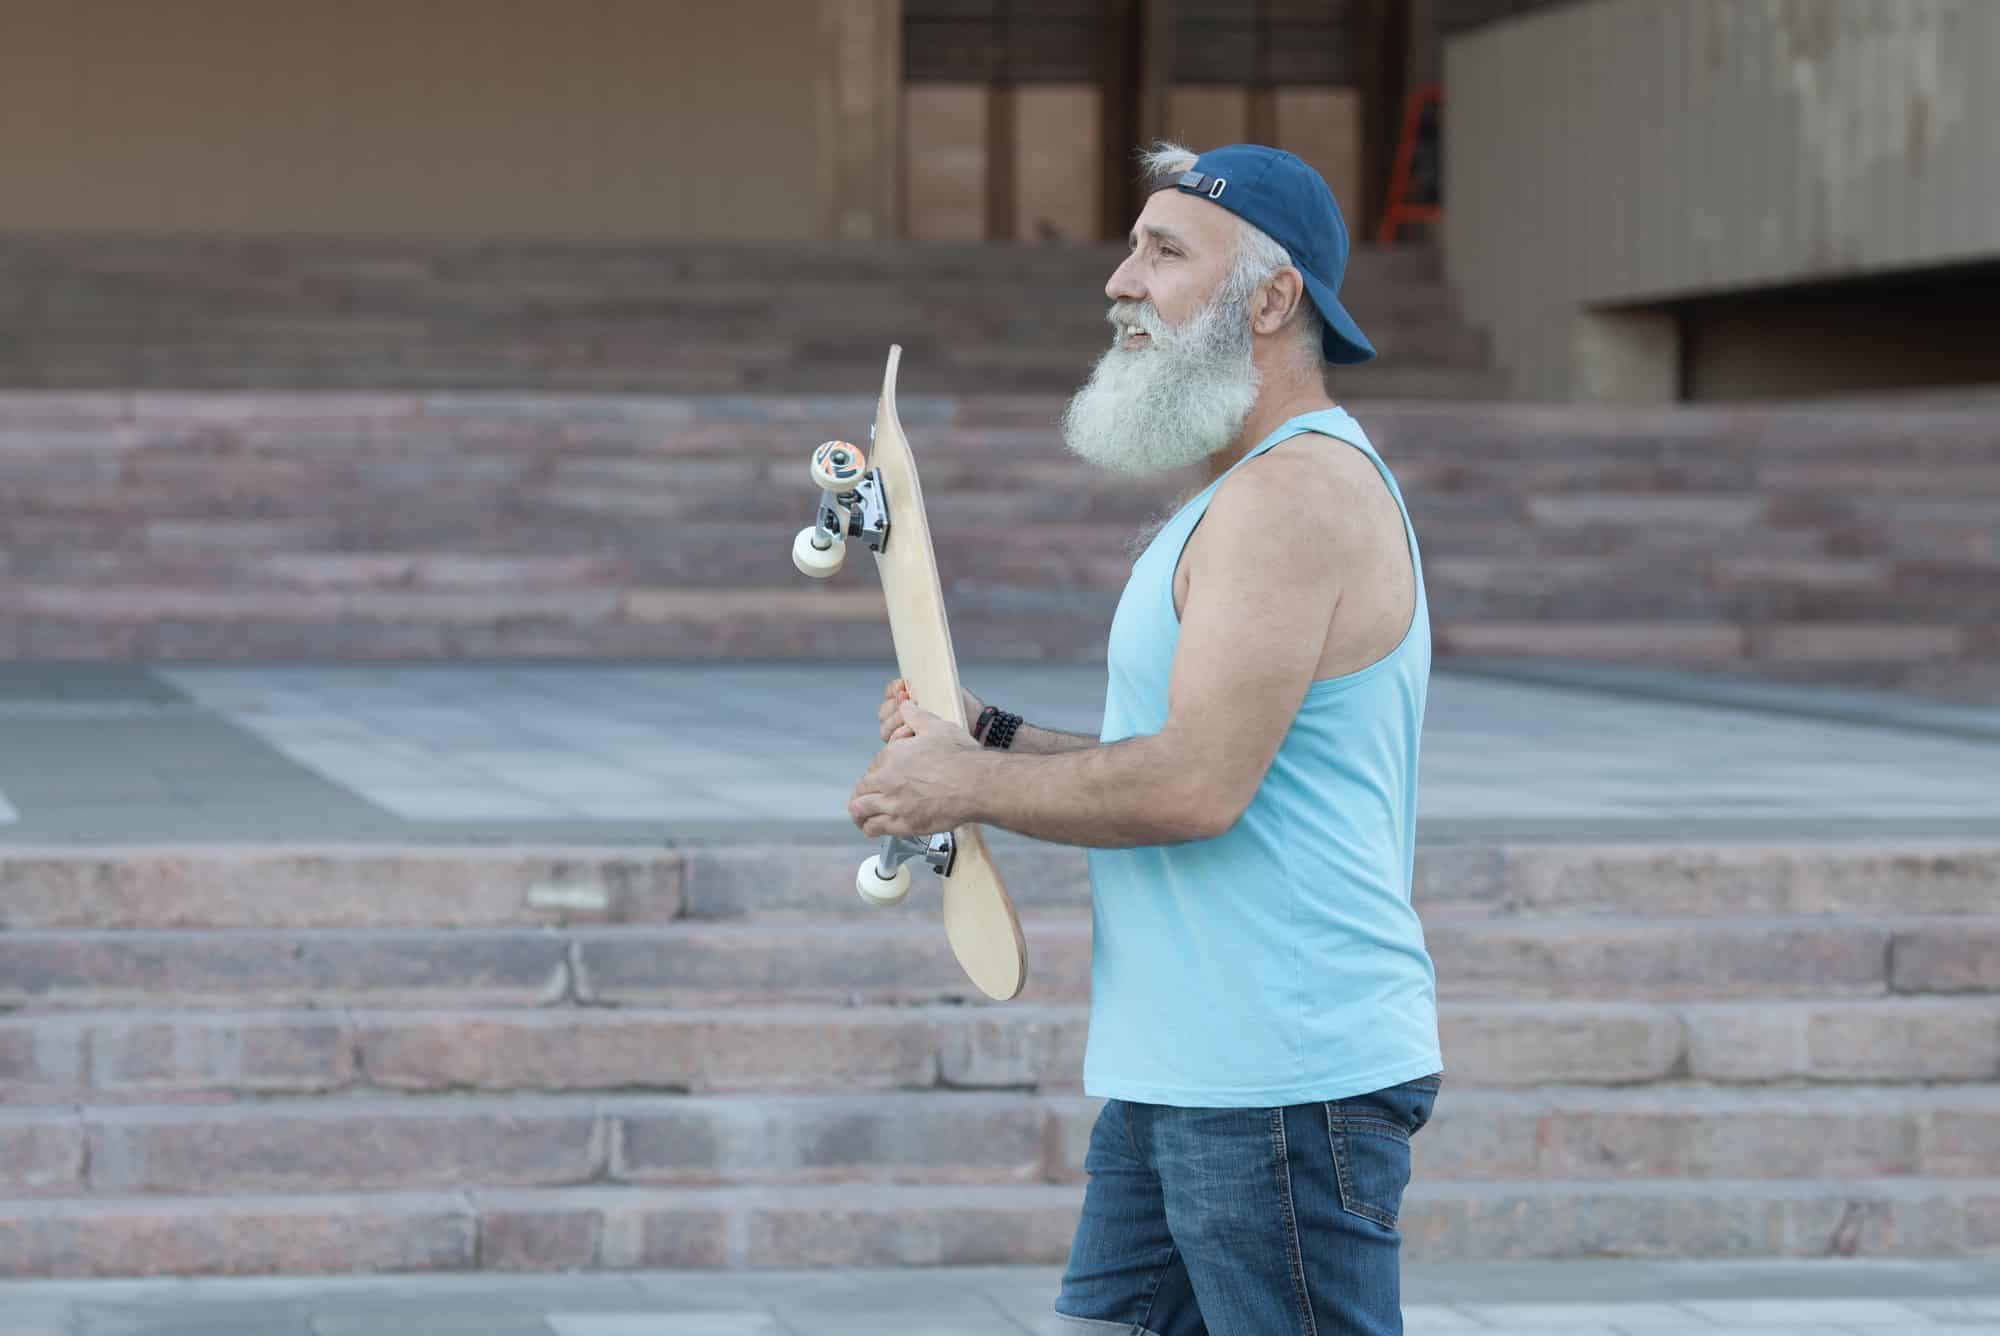 Am I Too Old to Skateboard